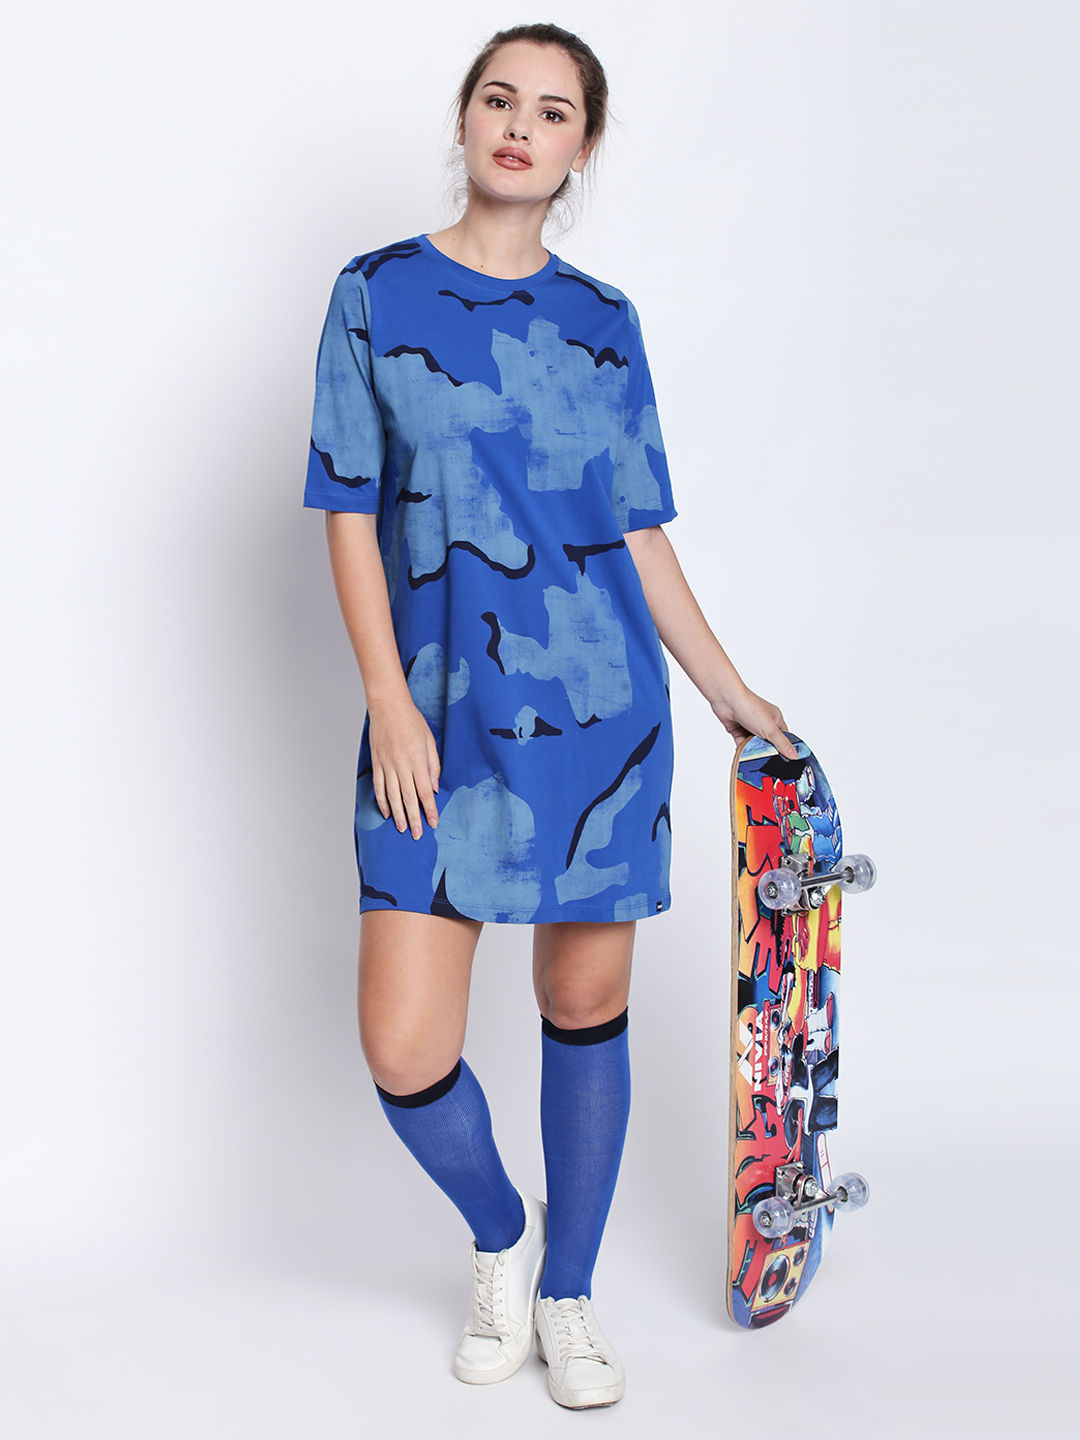 Disrupt R-Blue Cotton Military Camouflage Boyfriend -Fit Dress For Women's